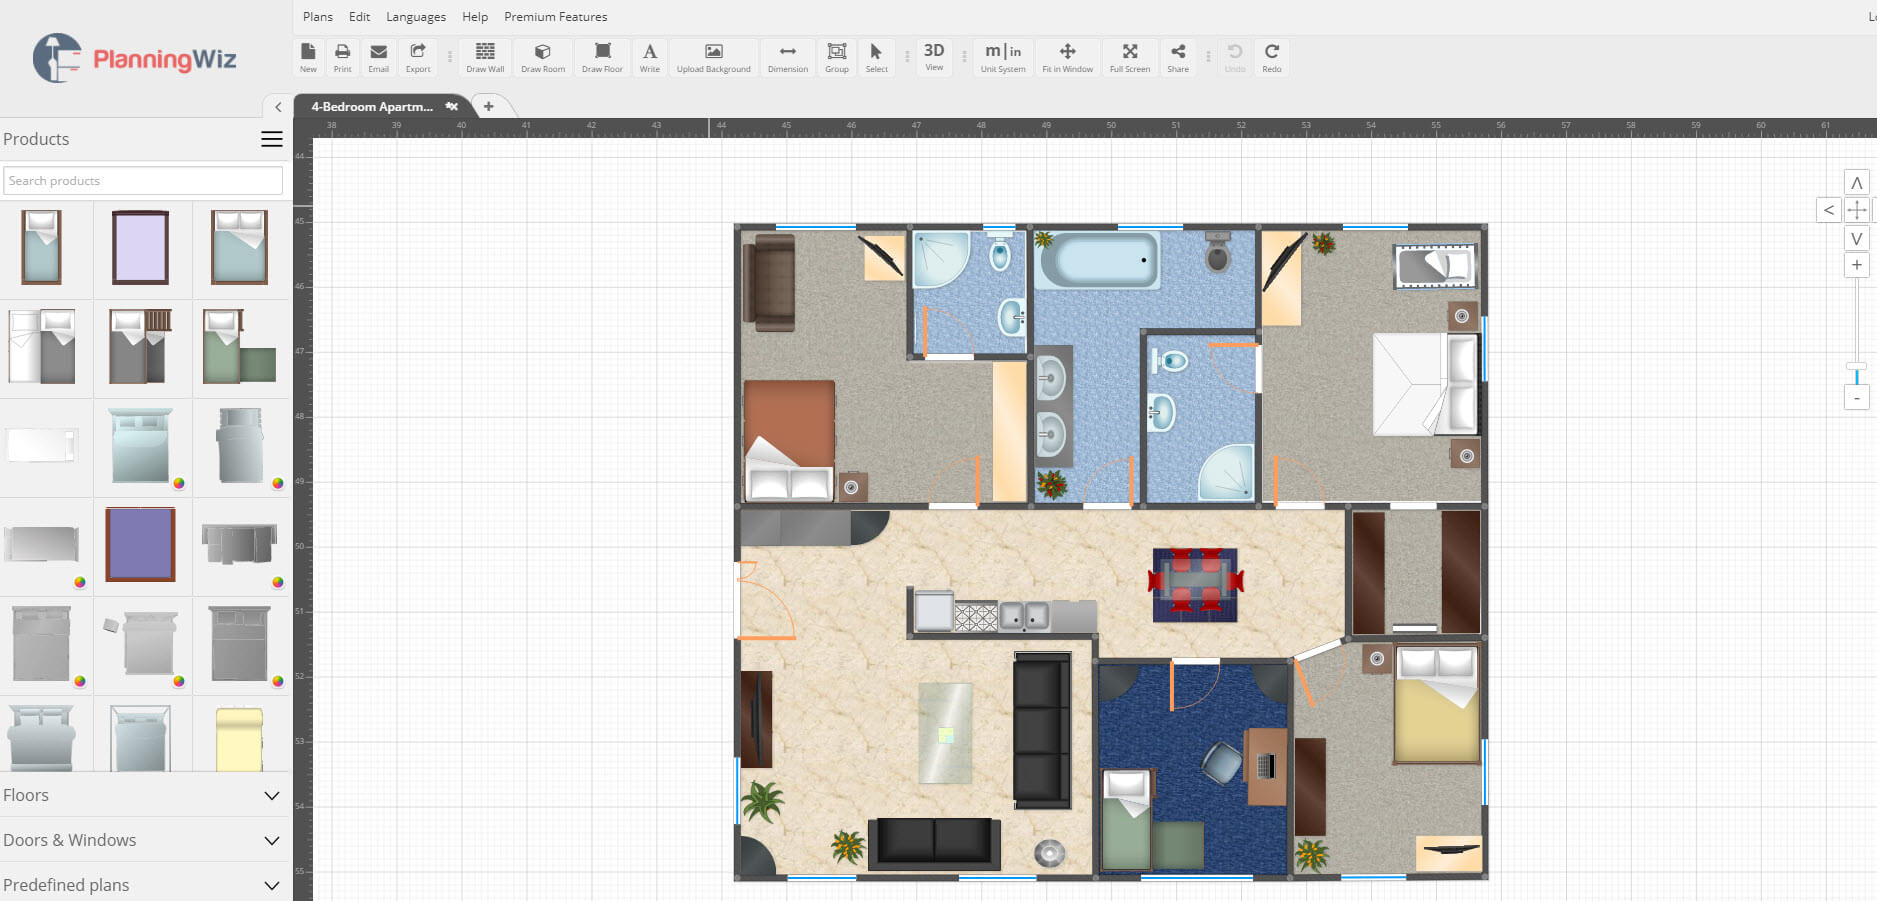 Planning Wiz House Projects